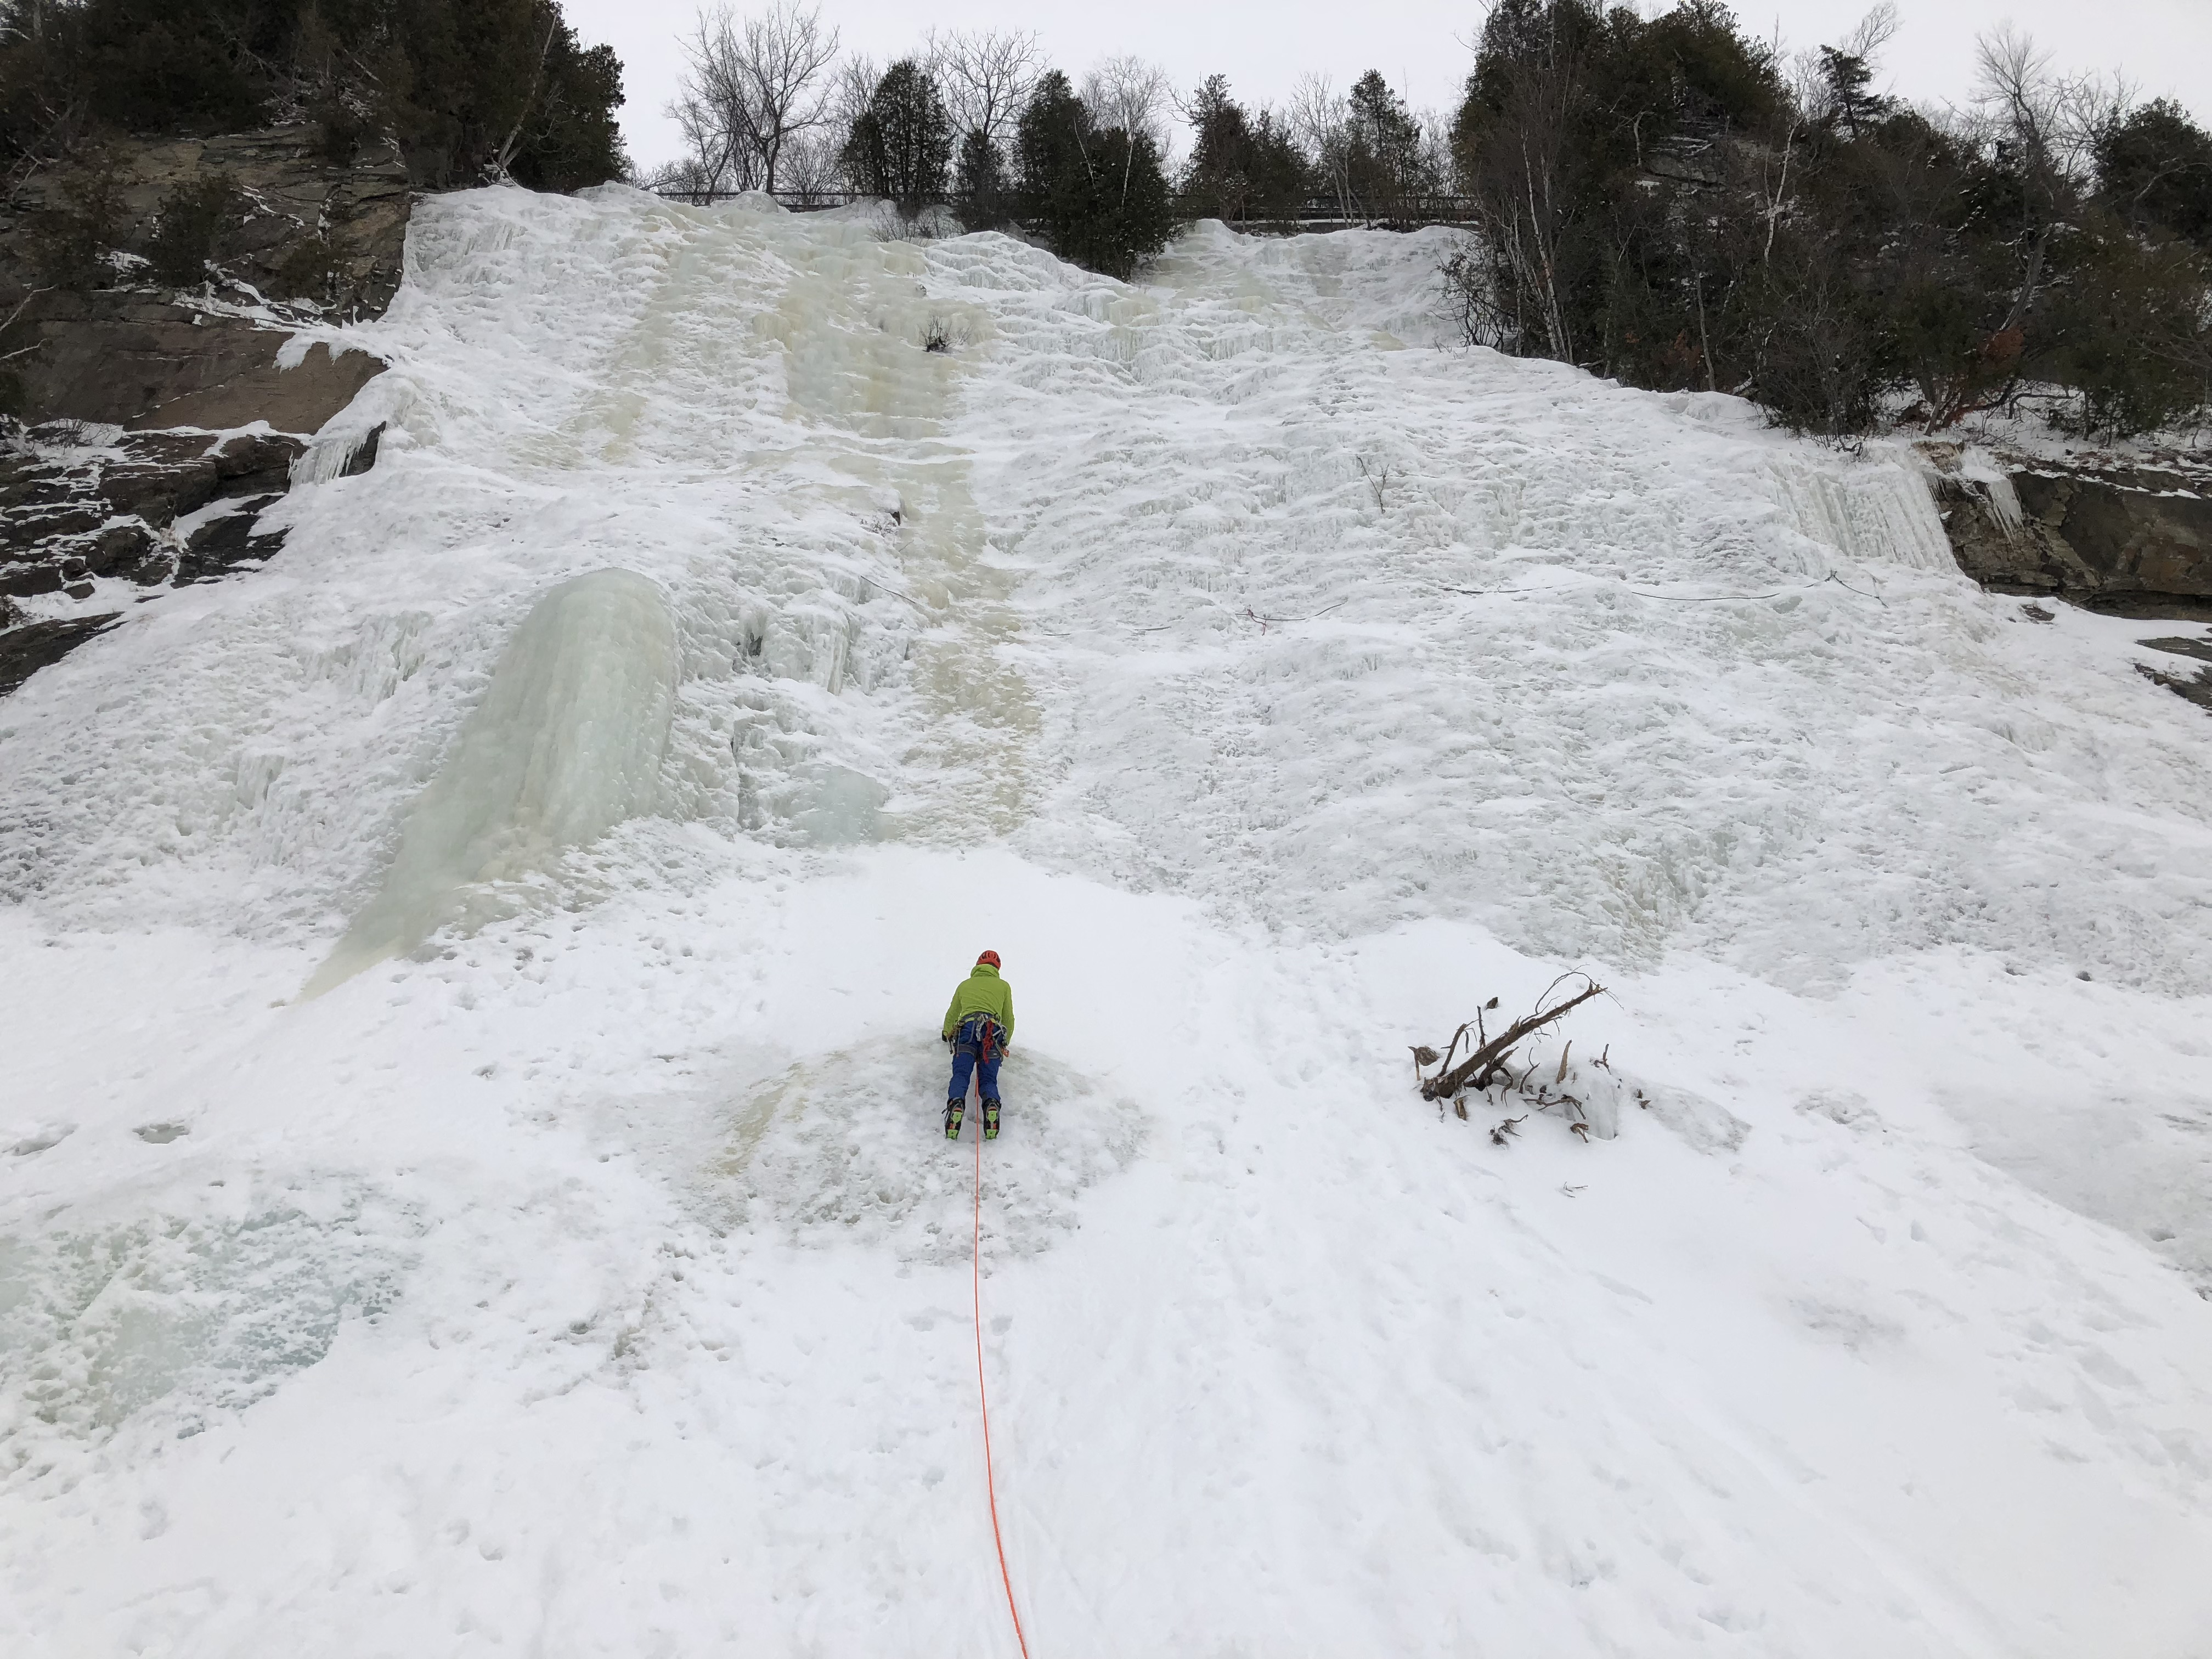 Ice climbing at the Montmorency waterfalls